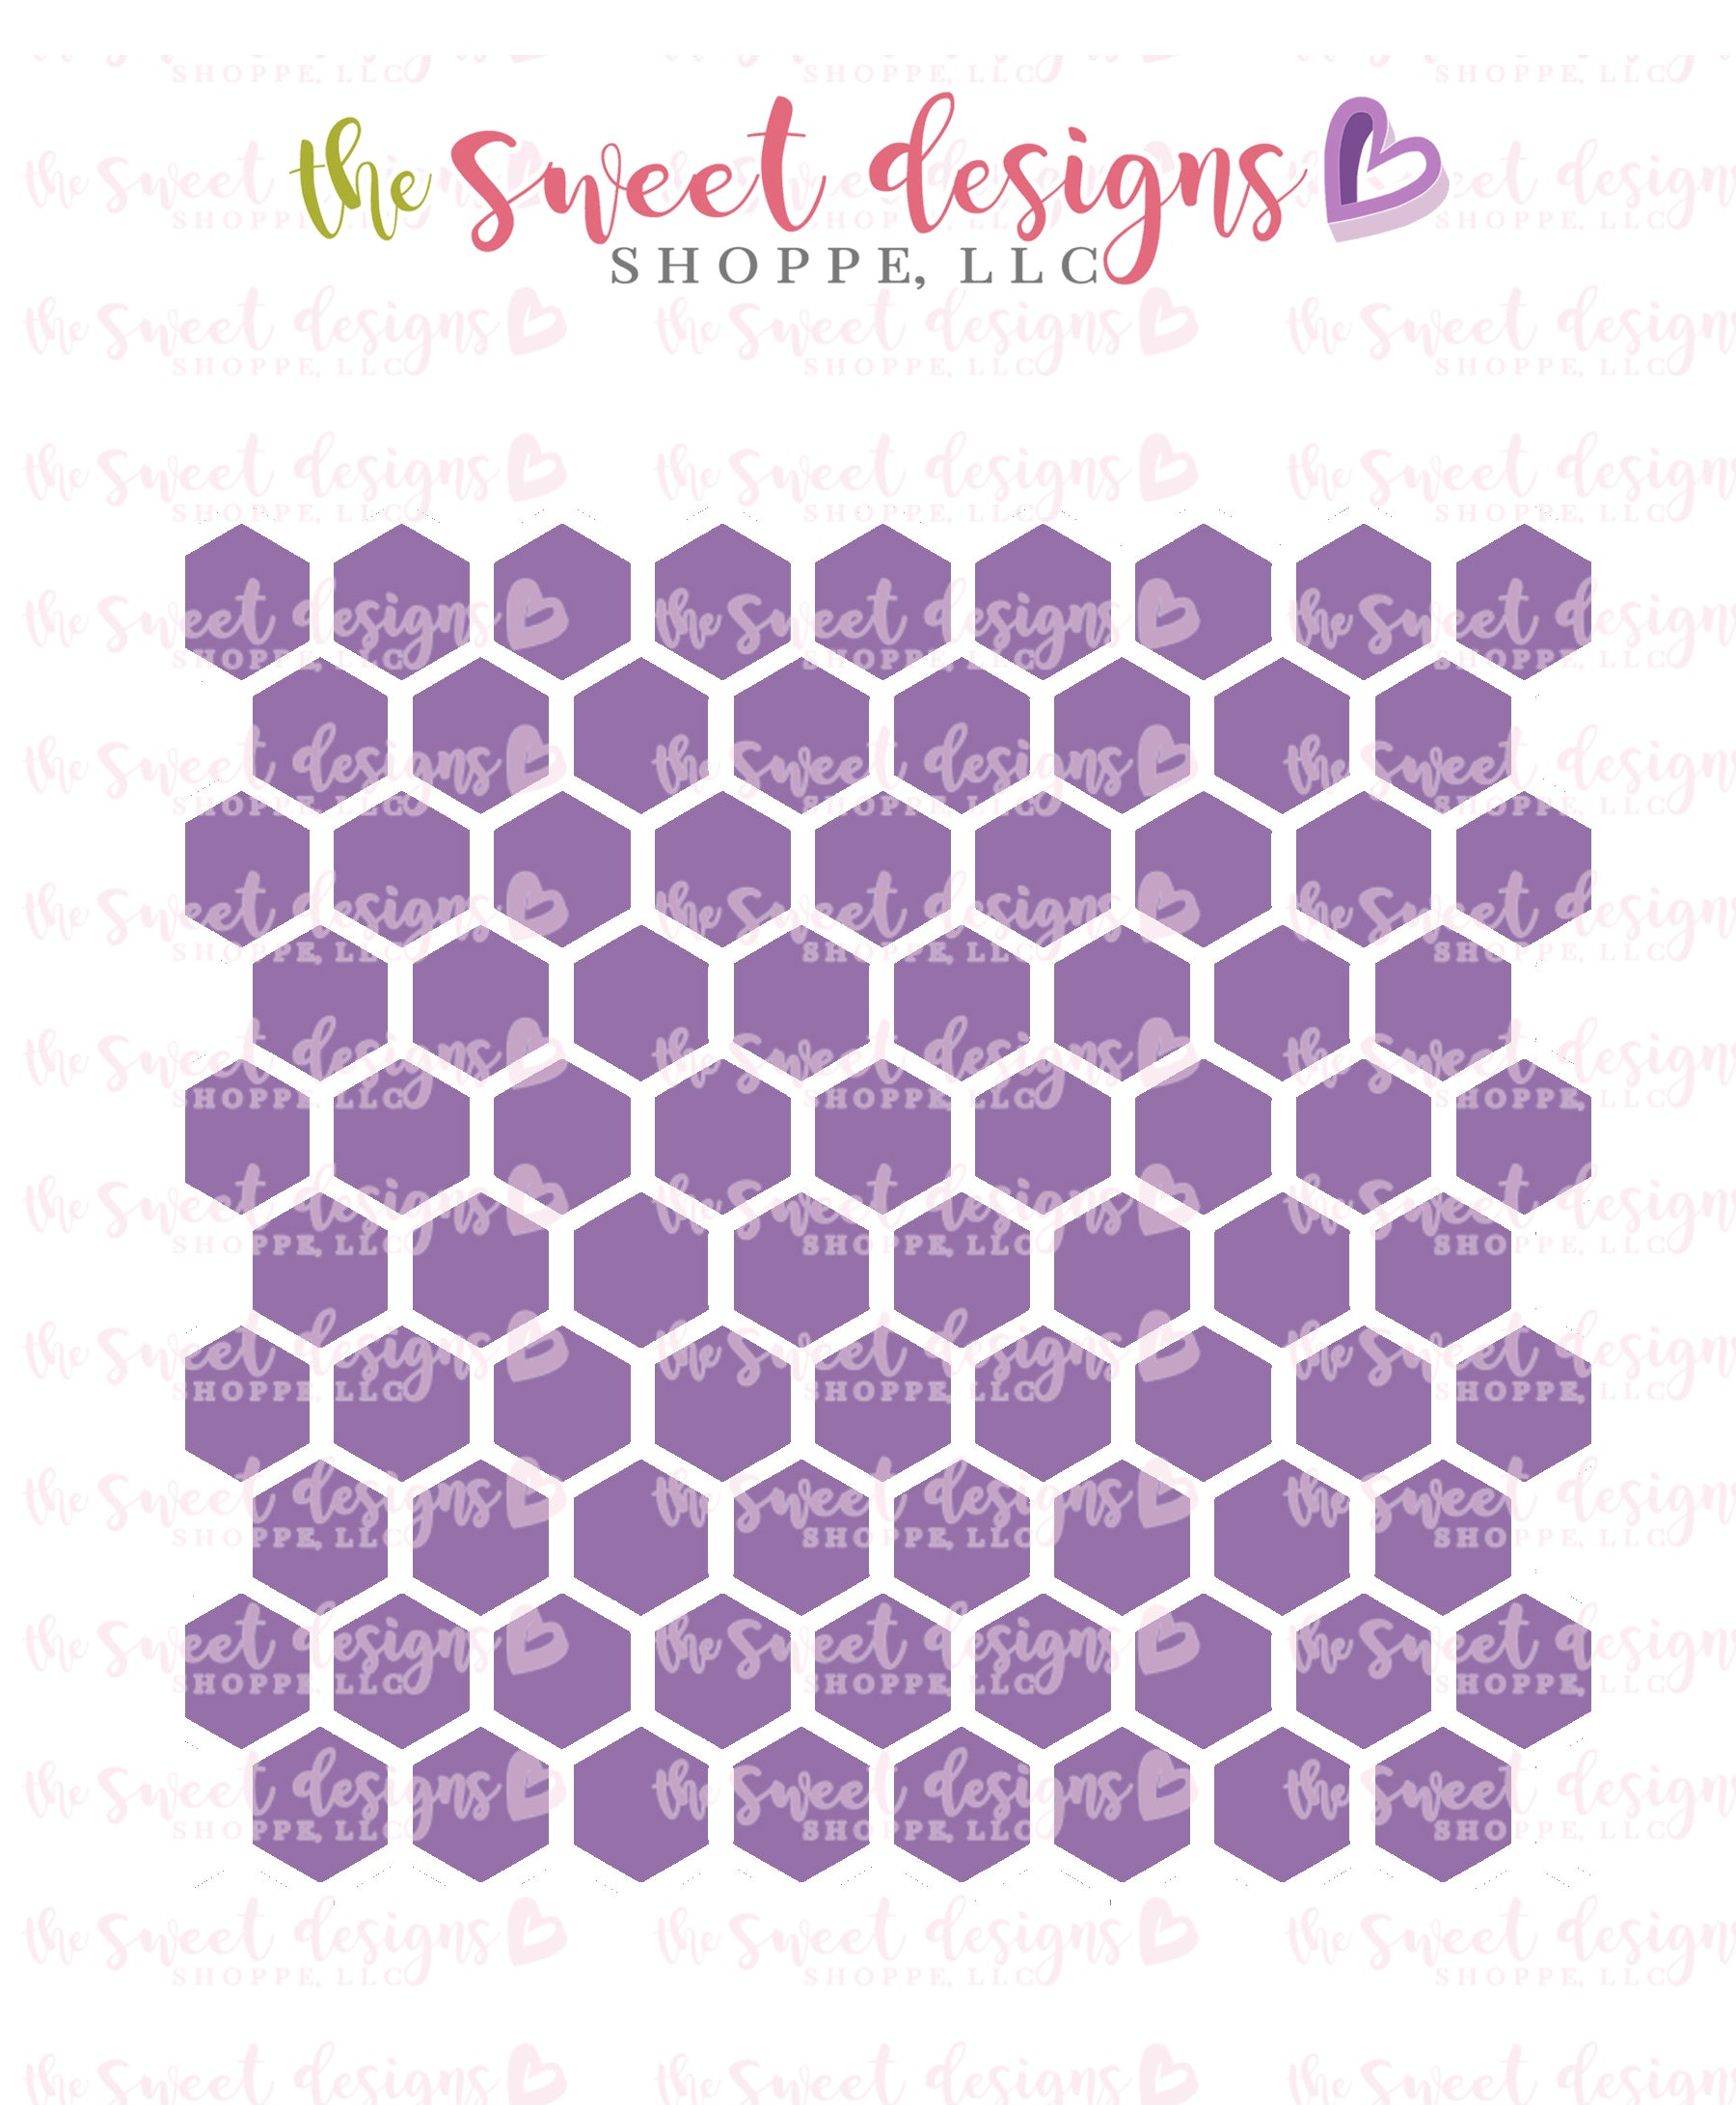 Honeycomb Hexagon Stencil The Sweet Designs Shoppe